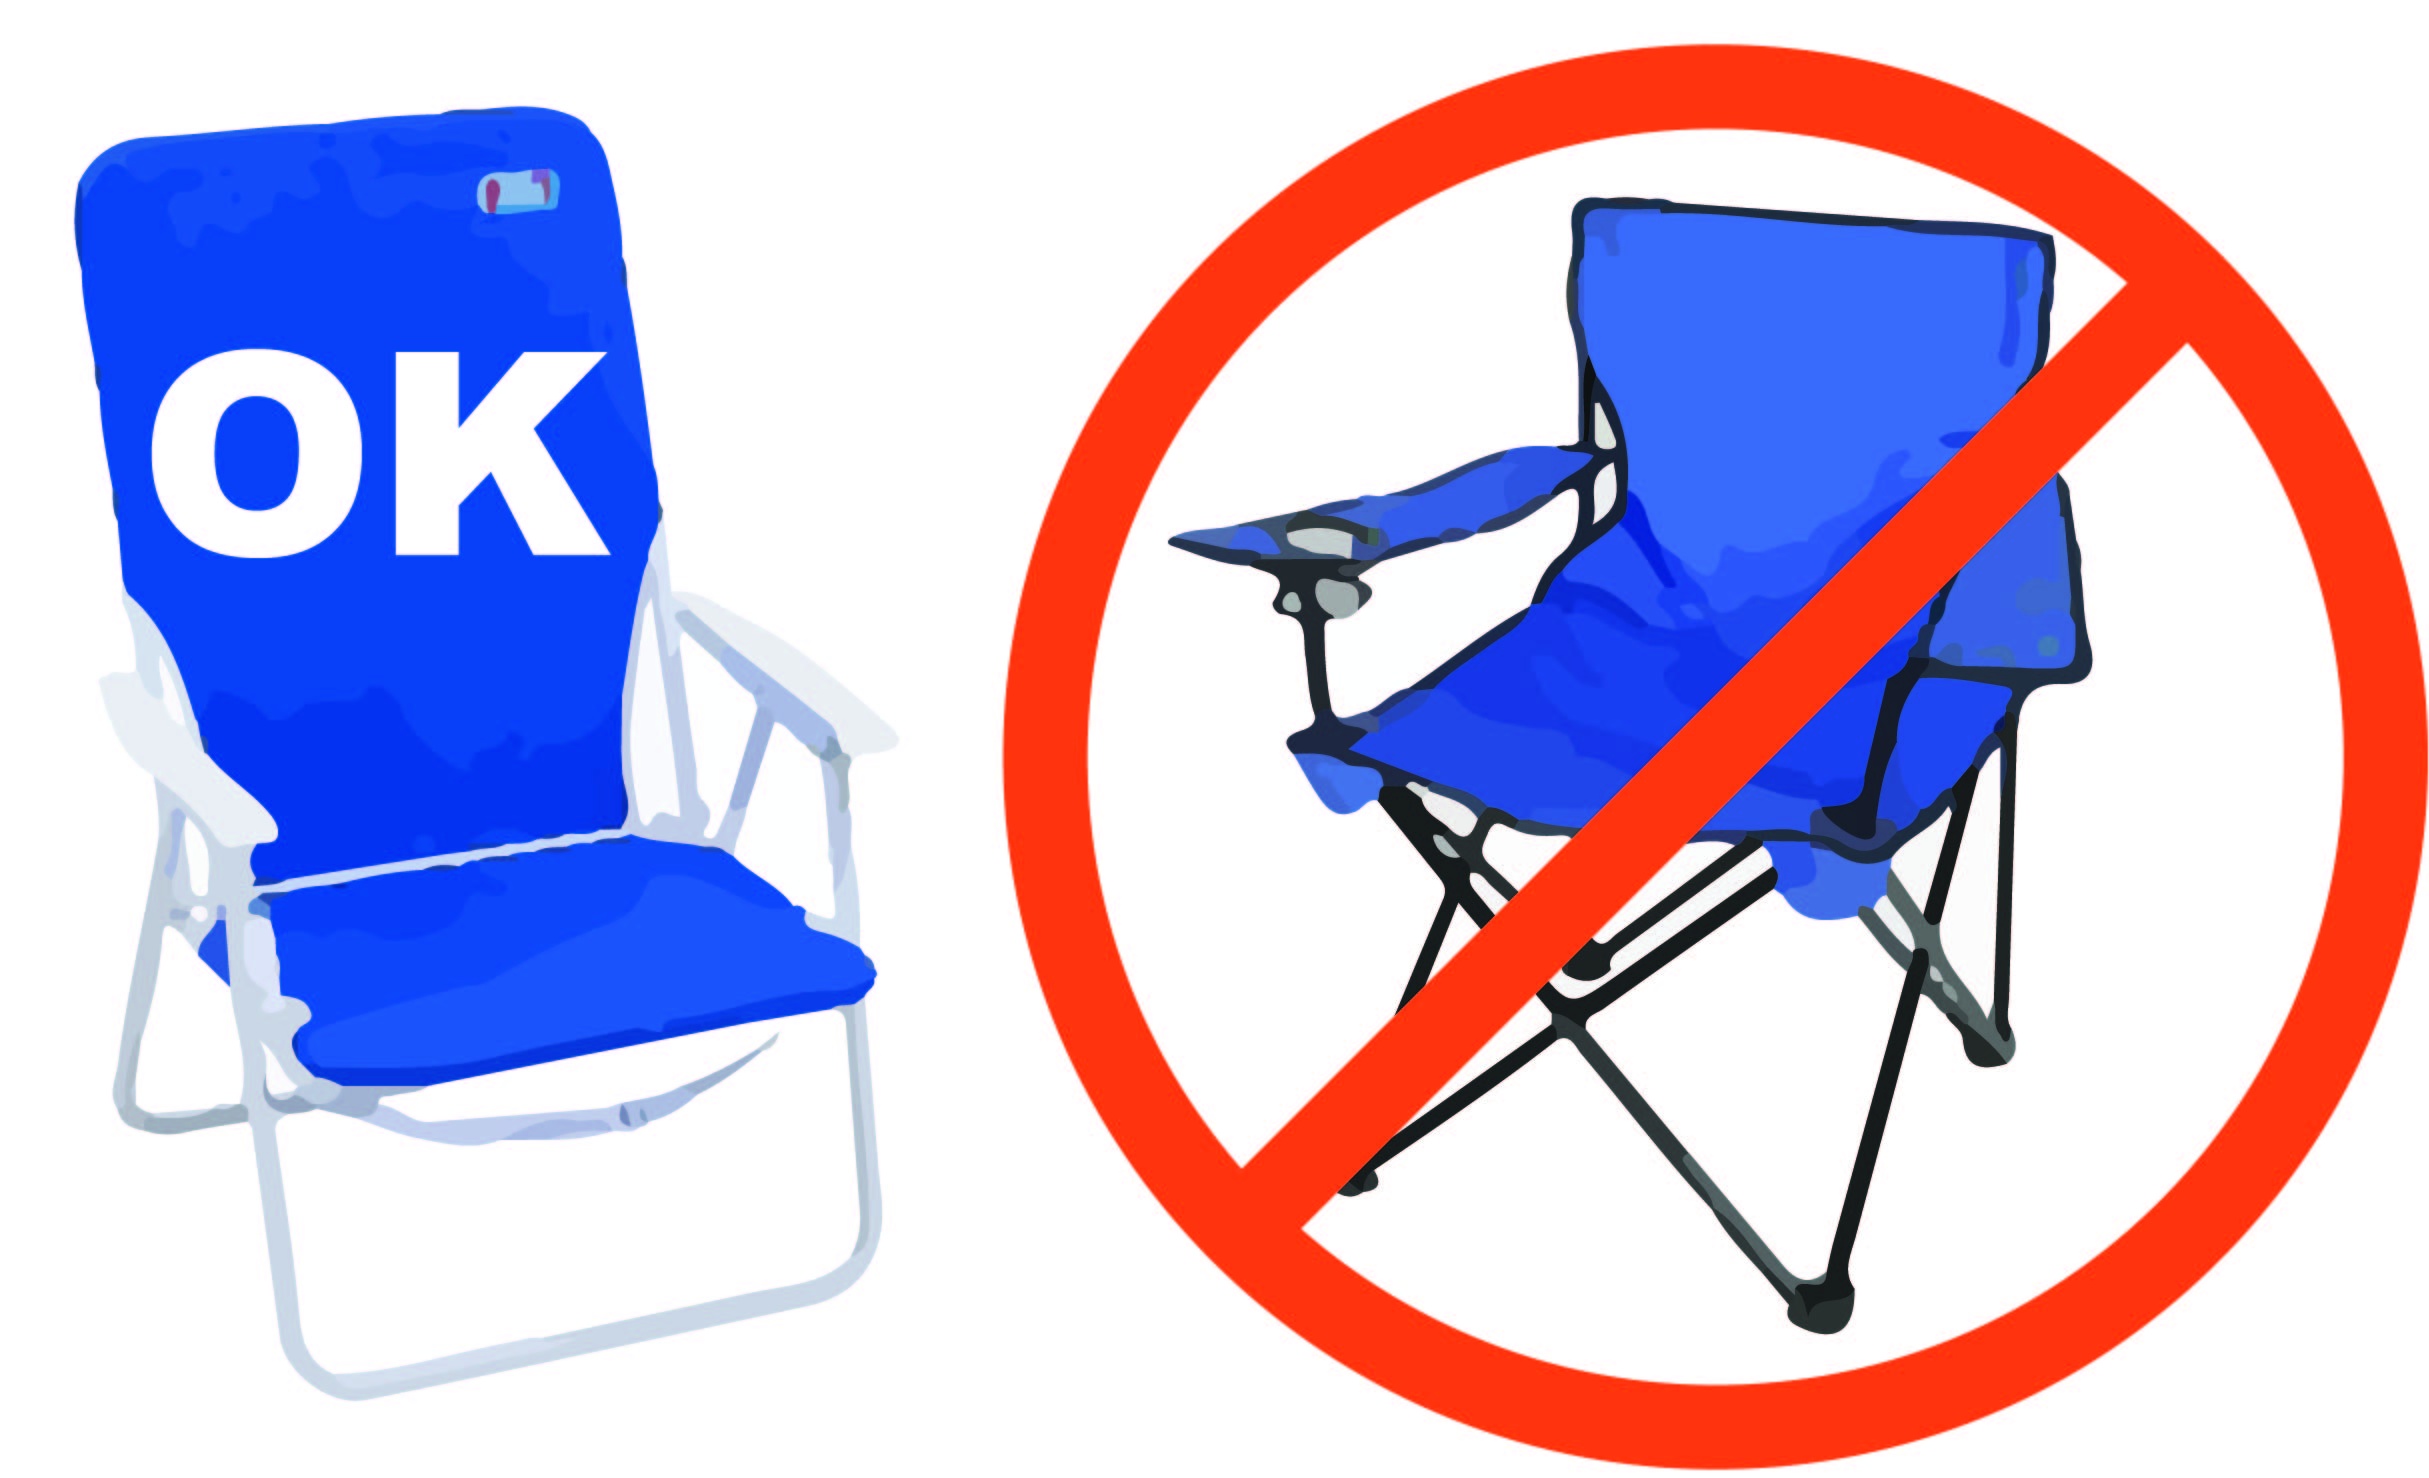 What chair to bring? - Please only bring beach chairs on the football field! Camping chairs are not allowed.